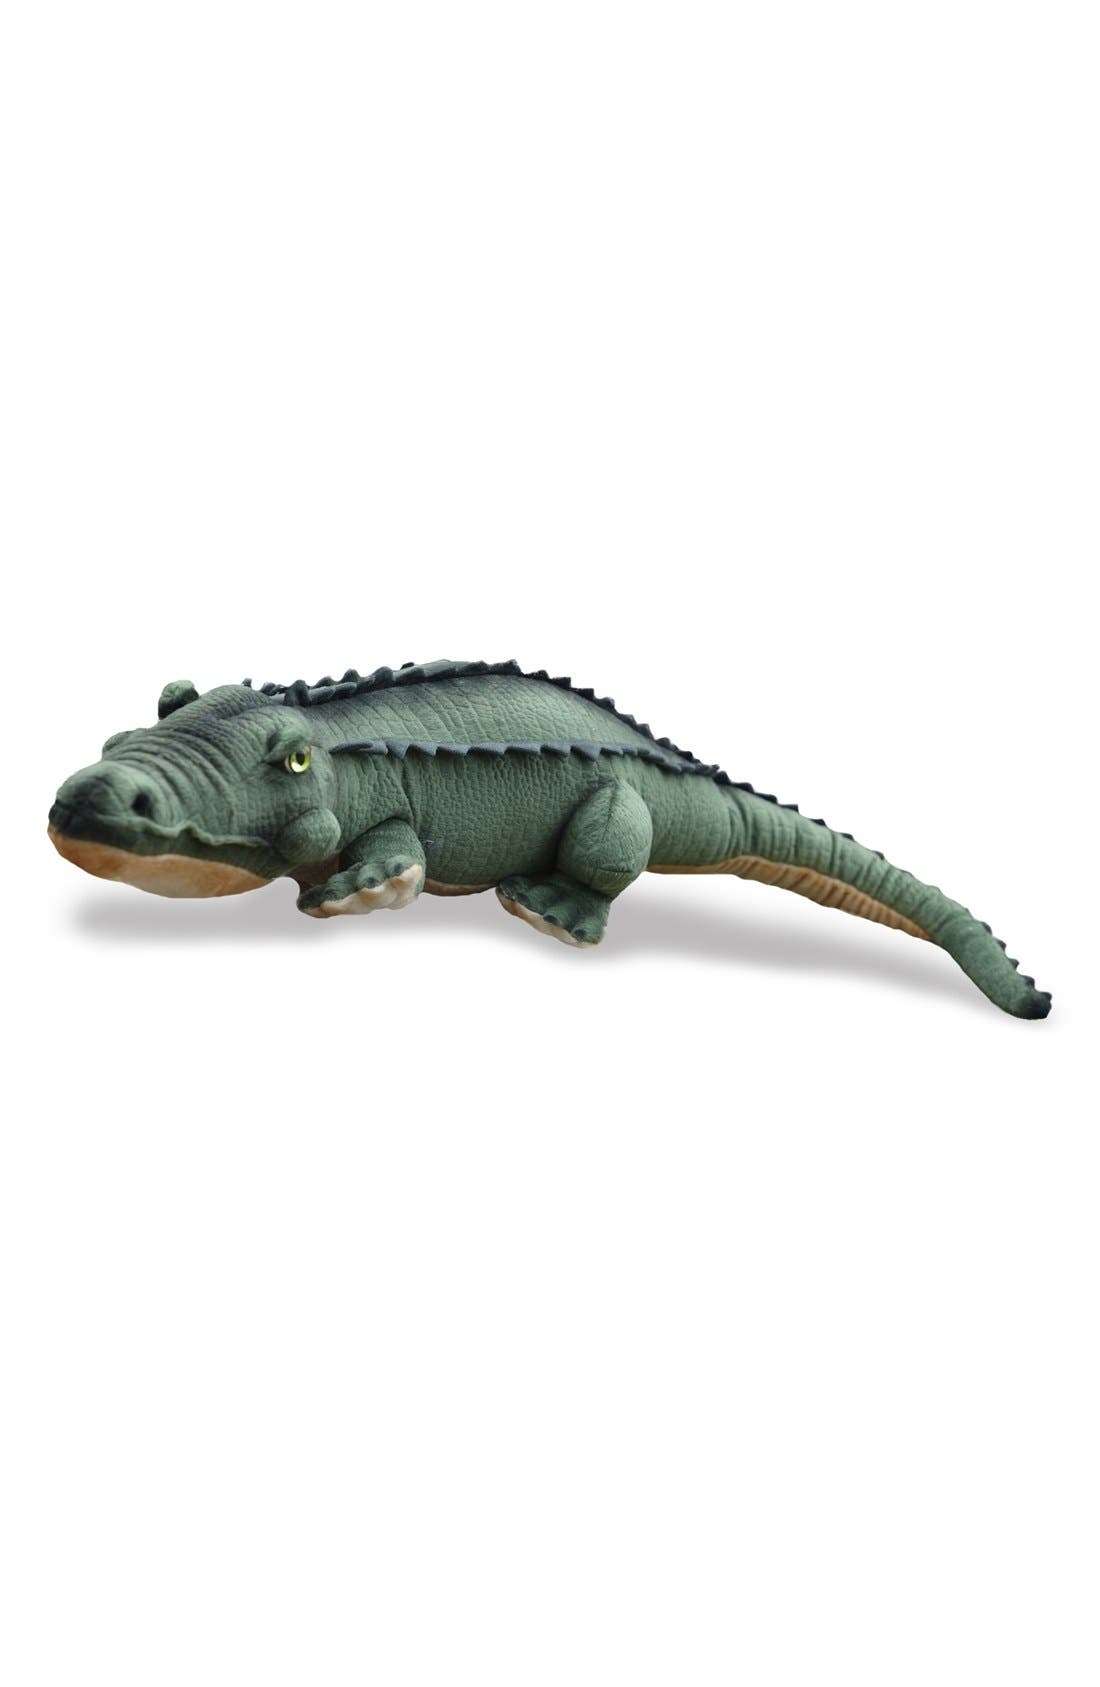 'Alligator' Stuffed Animal,                             Main thumbnail 1, color,                             Green